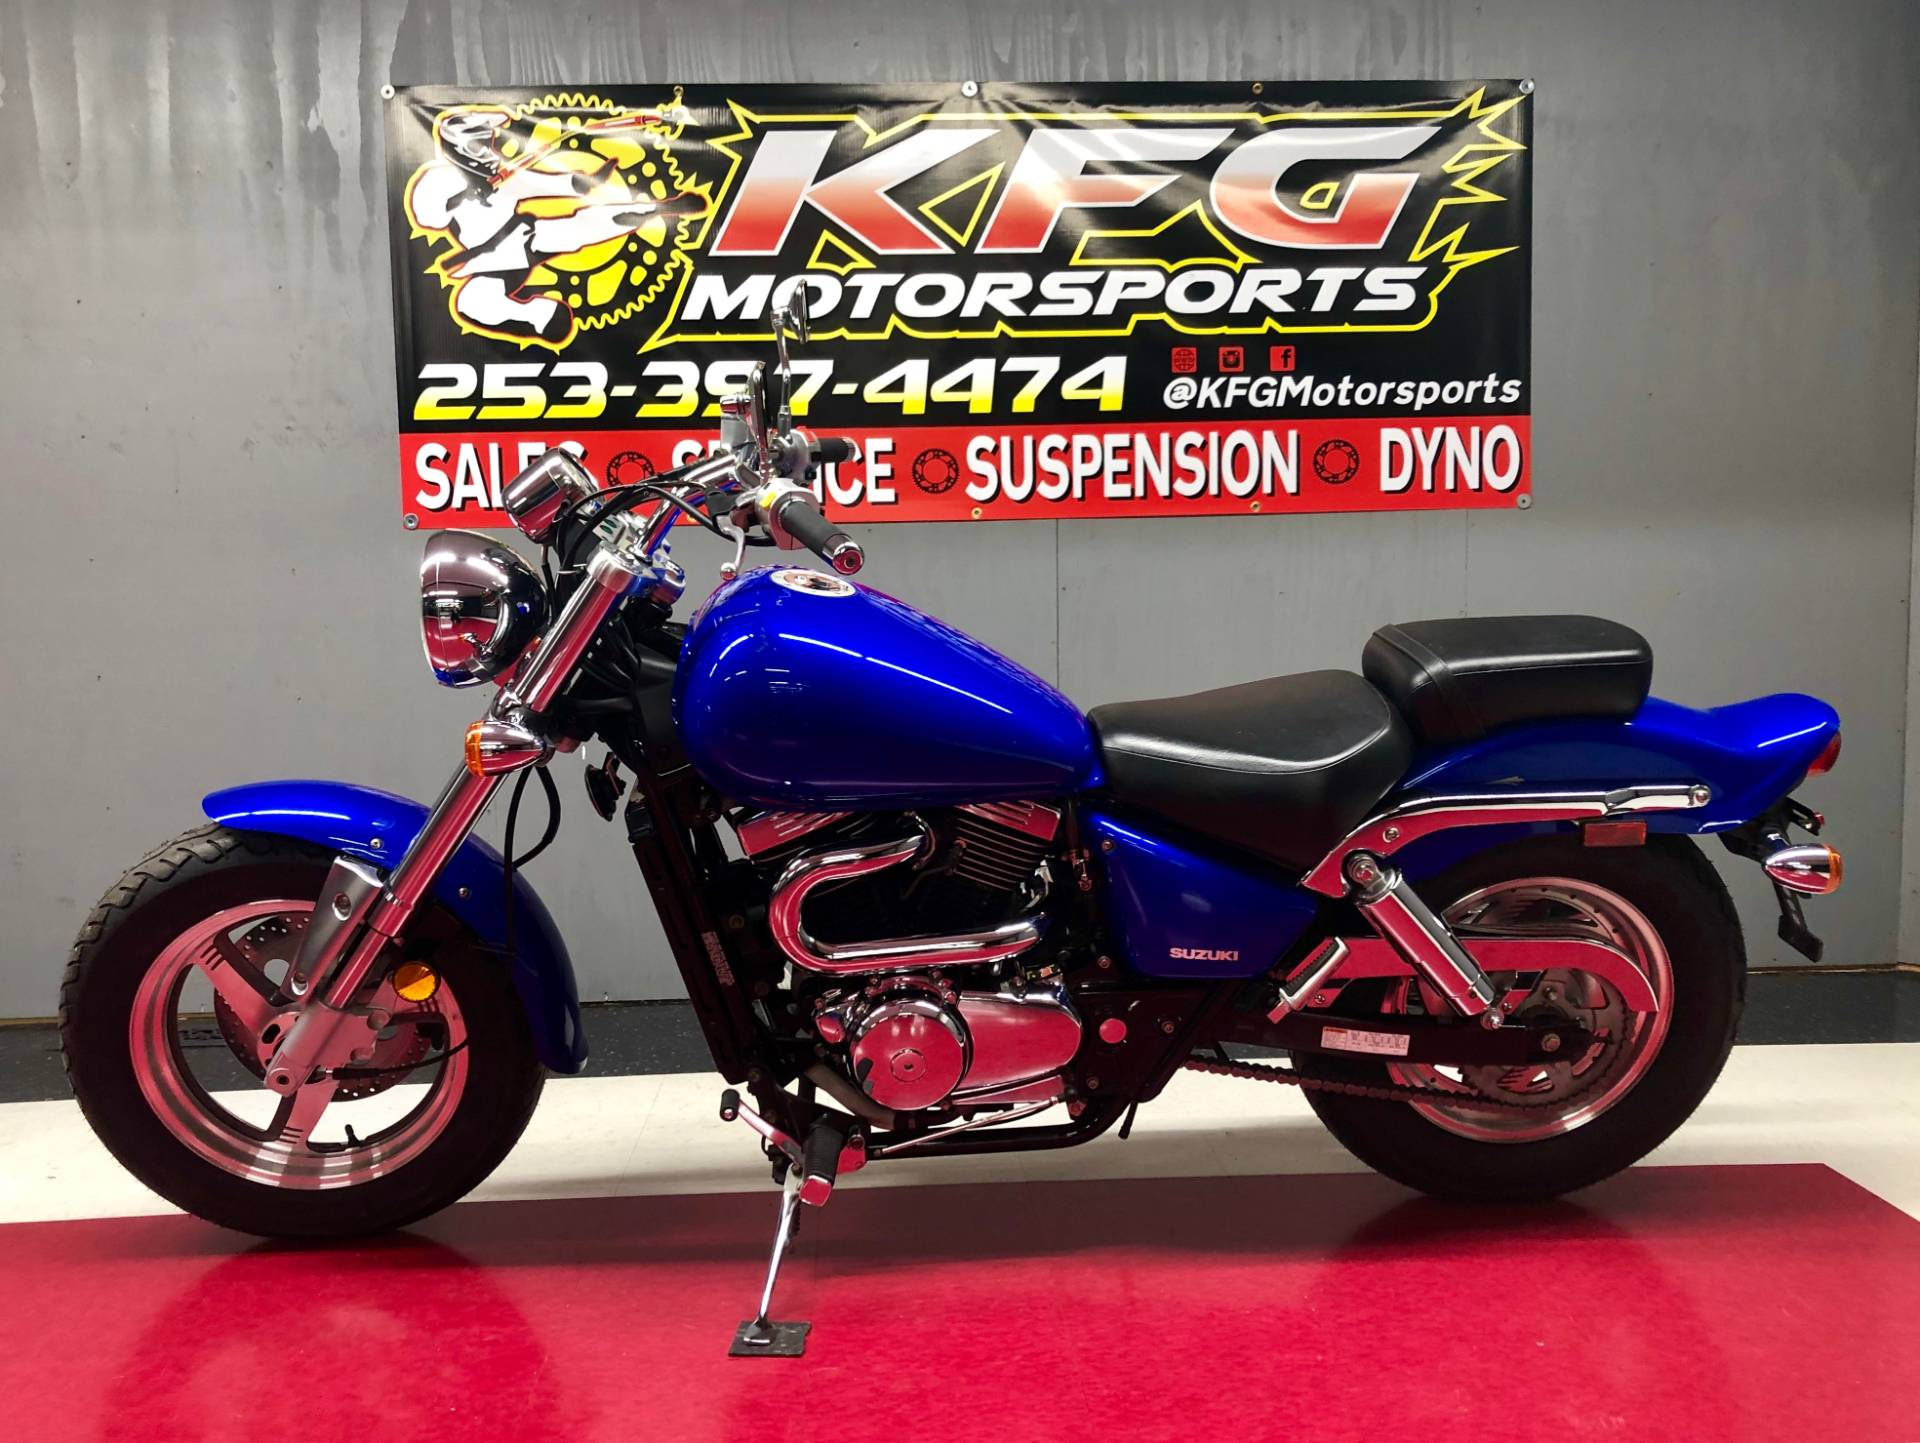 2004 Suzuki MAURAUDER 800 in Auburn, Washington